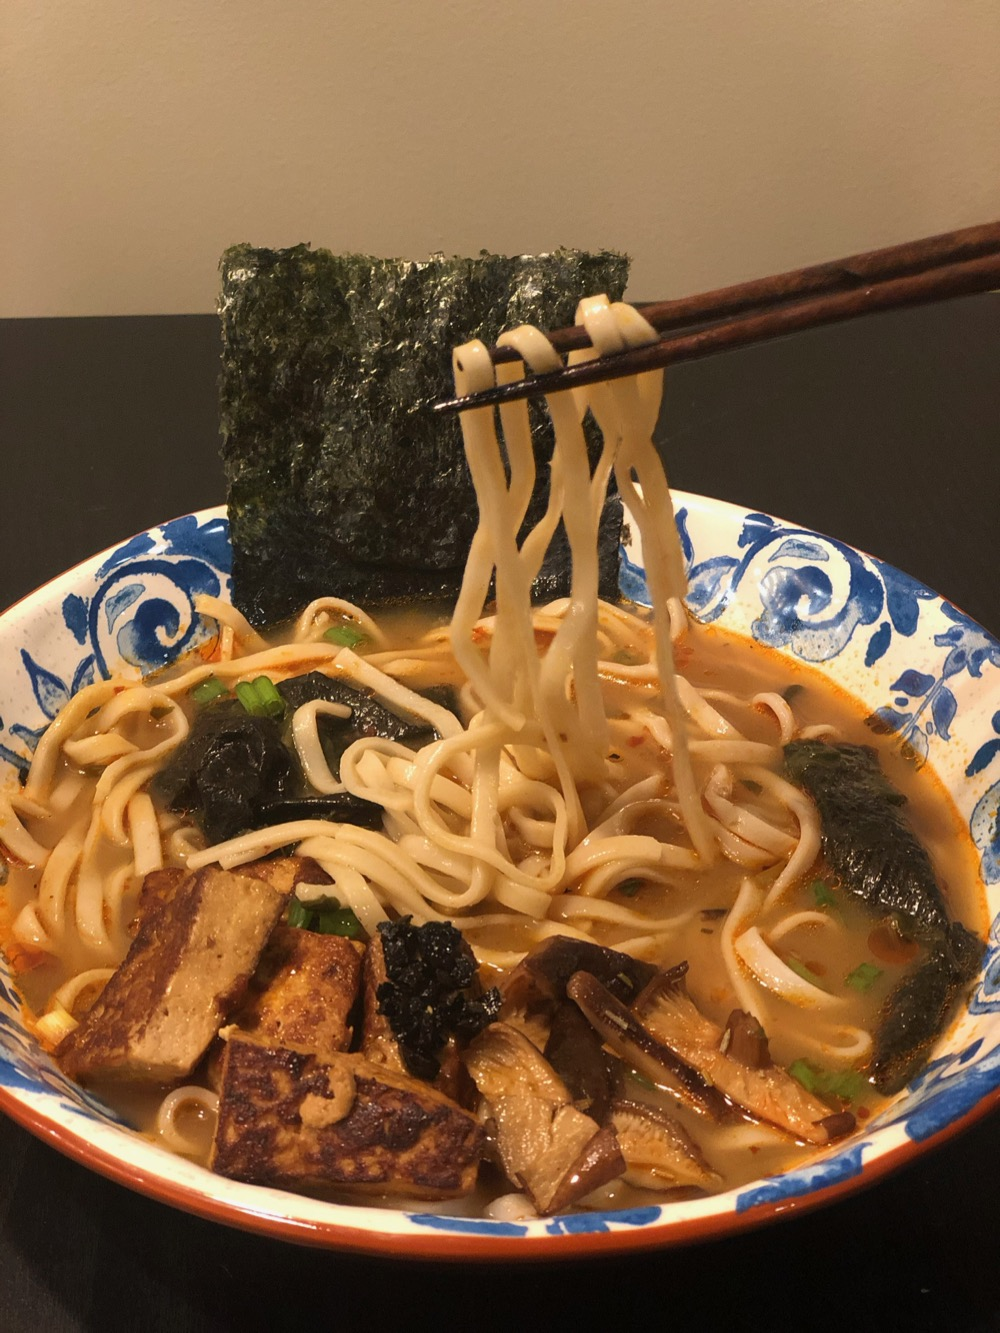 Look at those udon noodles!